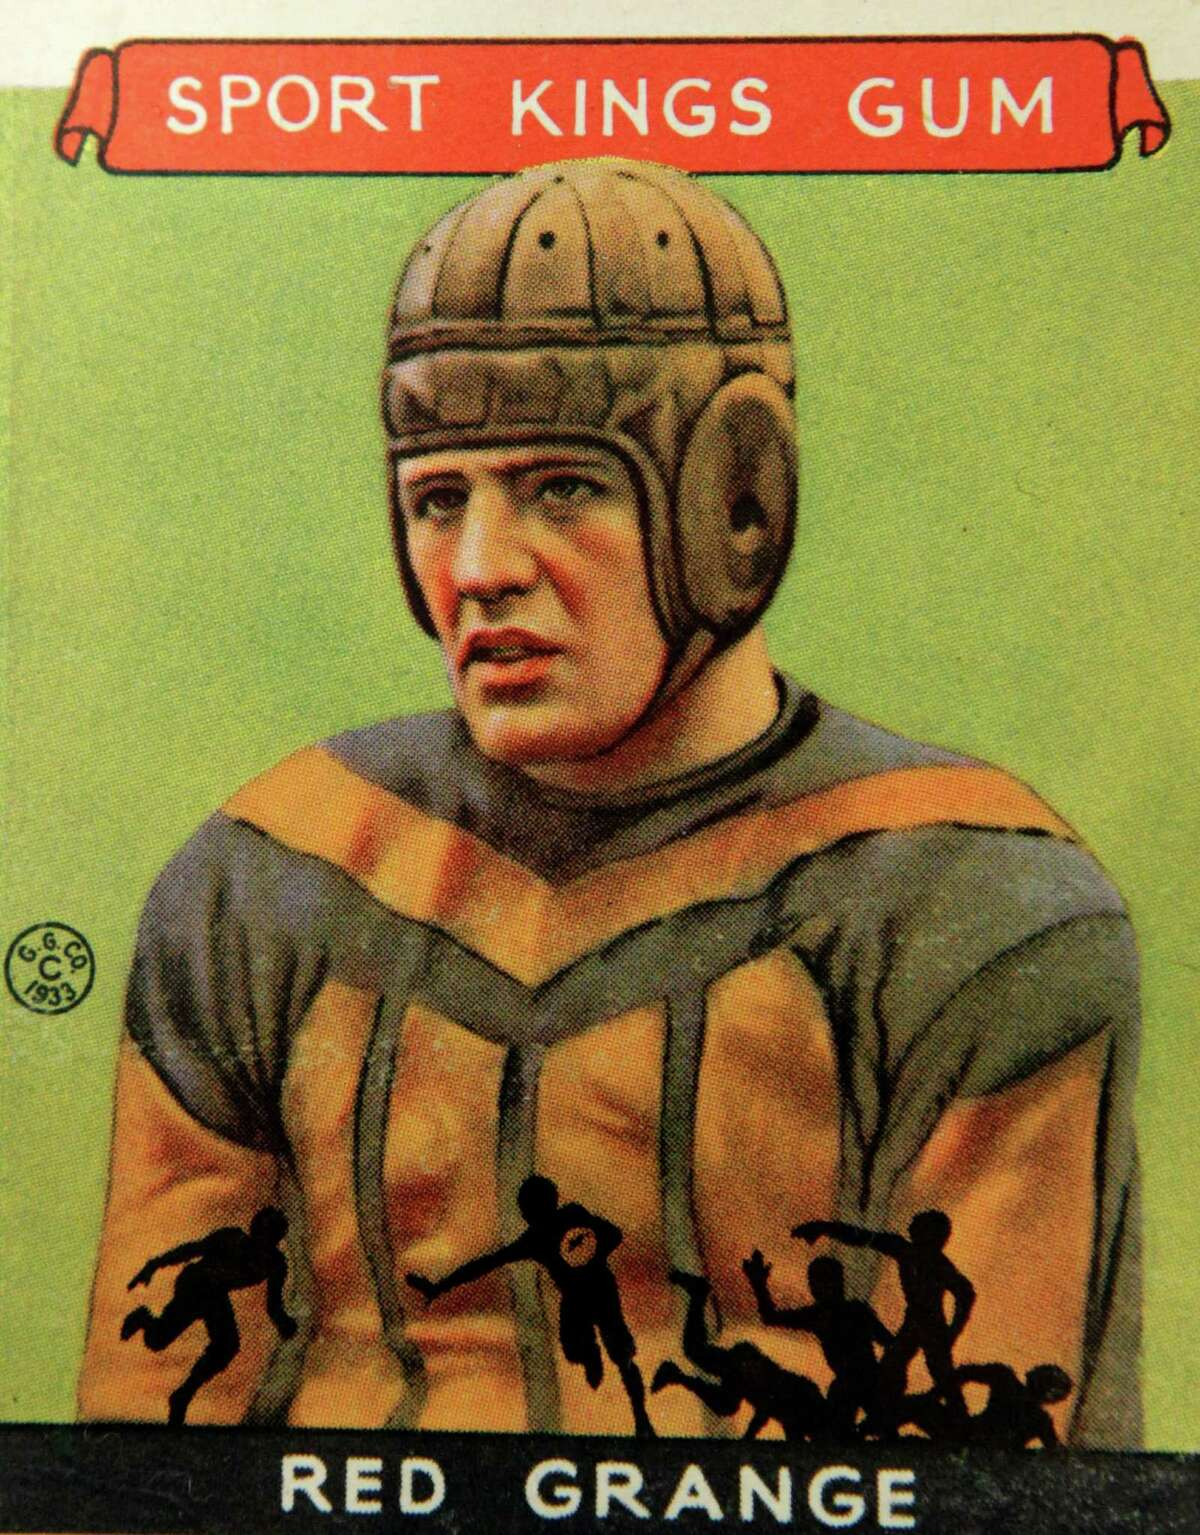 A Red Grange football trading card, shown Wednesday, Jan. 8, 2014, is part of an exhibit of vintage football cards to be shown at the Metropolitan Museum of Art in New York. The pop-up exhibition of 150 cards, including a series from 1894, are part of approximately 600 from the museum's vast collection of sport trade cards donated to the Met by the late hobby pioneer Jefferson Burdick. Sunday, Jan. 12, 2014, in New York. The exhibit opens Jan. 24 and runs through Feb. 10. (AP Photo/Kathy Willens) ORG XMIT: NYKW103